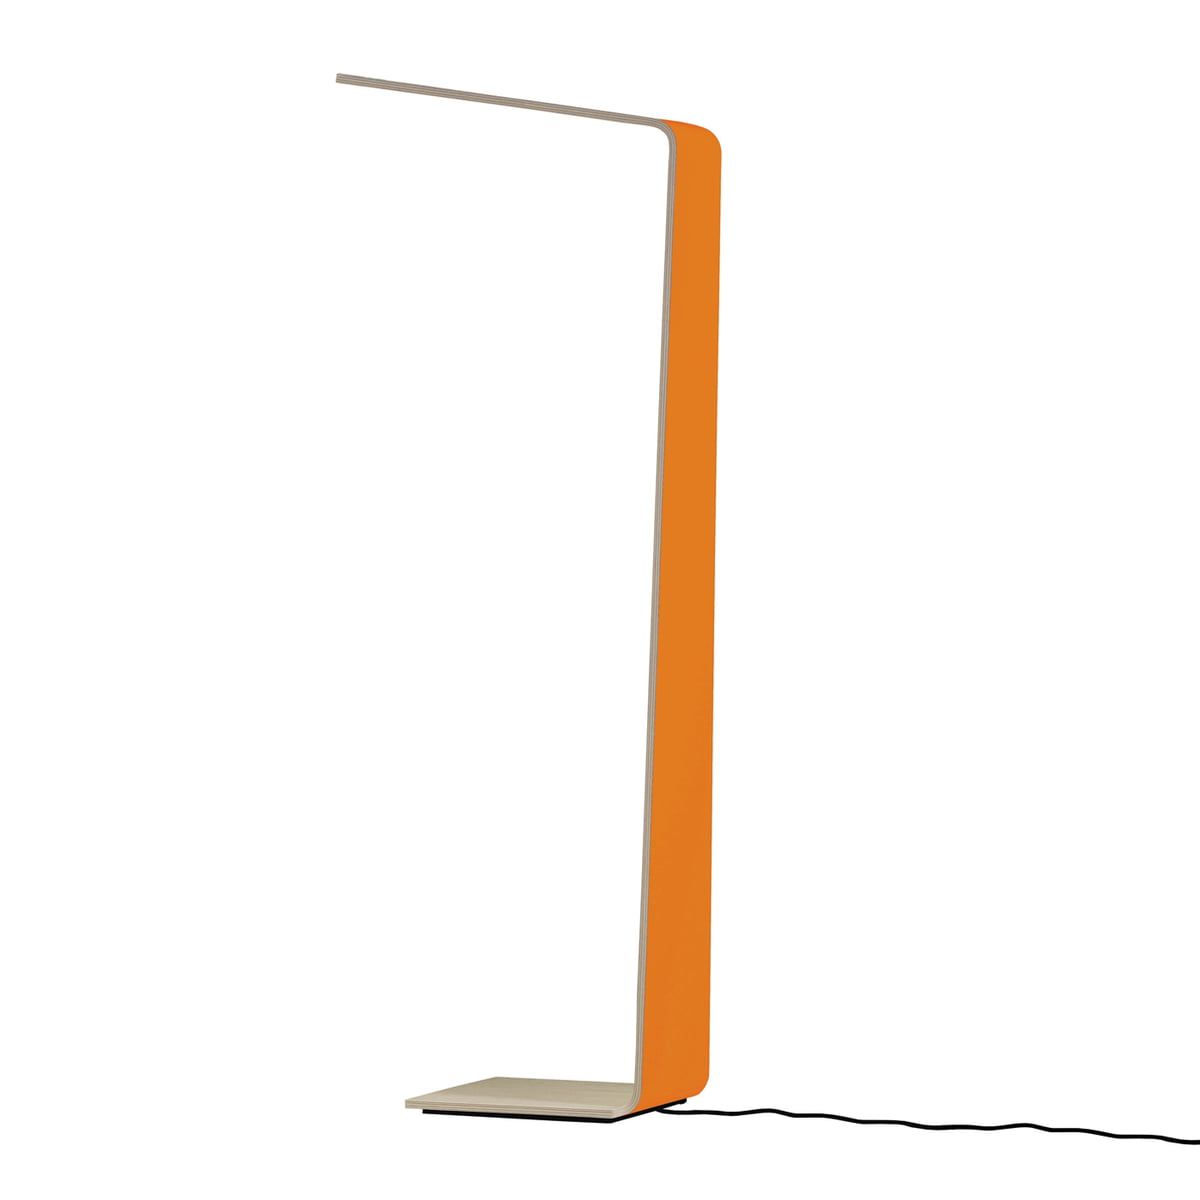 Led 2 wooden floor lamp by tunto in the shop led 2 floor lamp by tunto in orange aloadofball Images